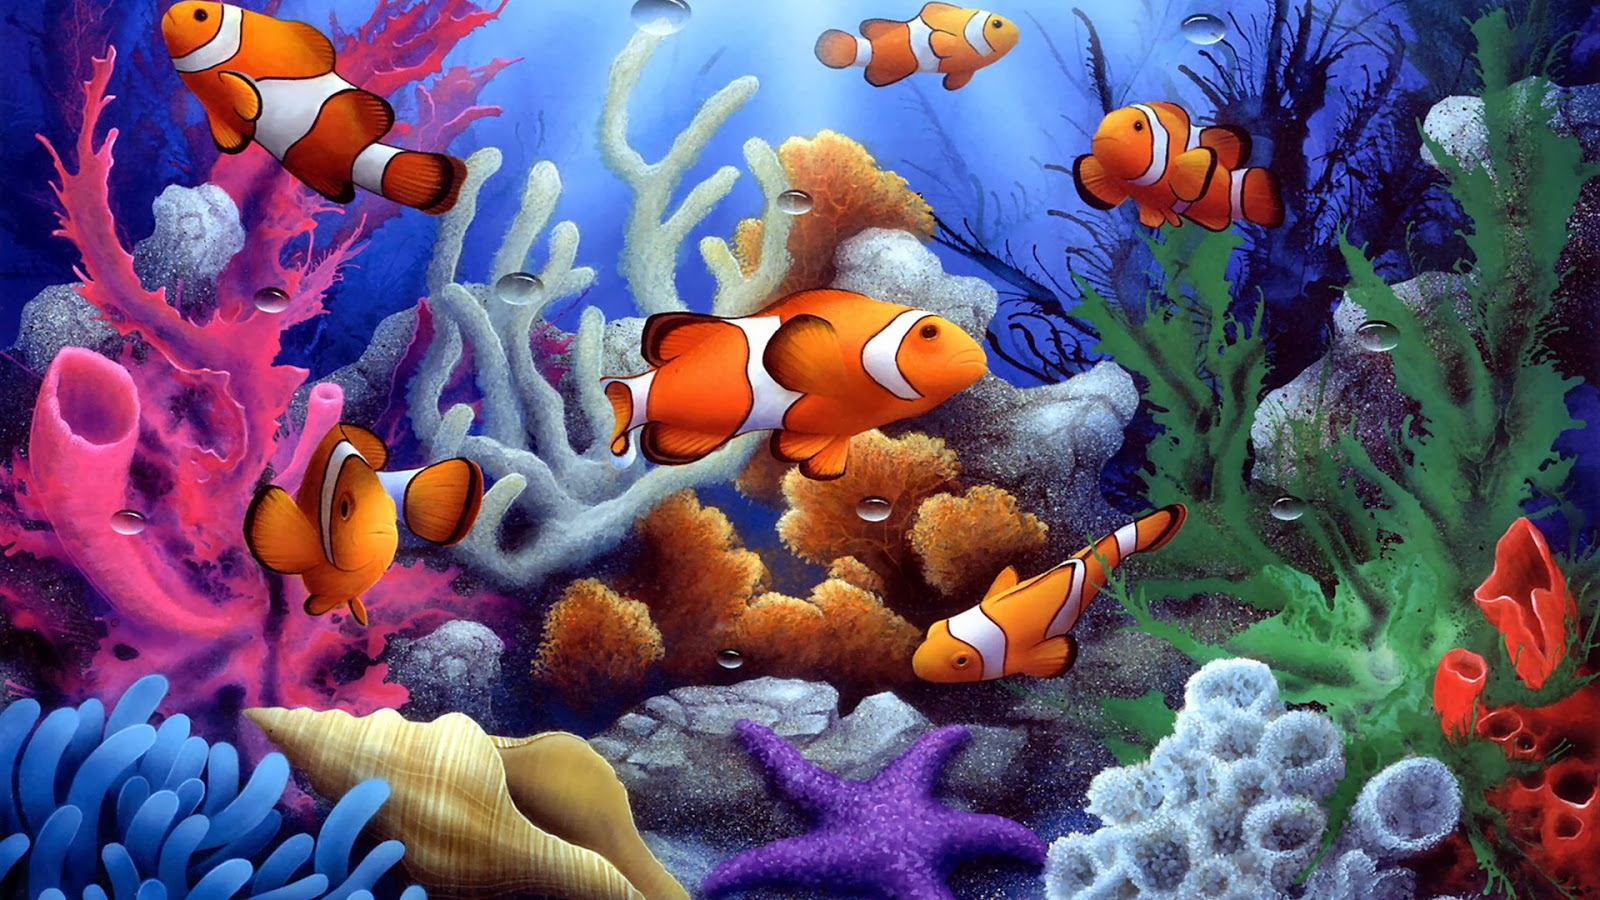 48 Free Fish Wallpaper For Computer On Wallpapersafari